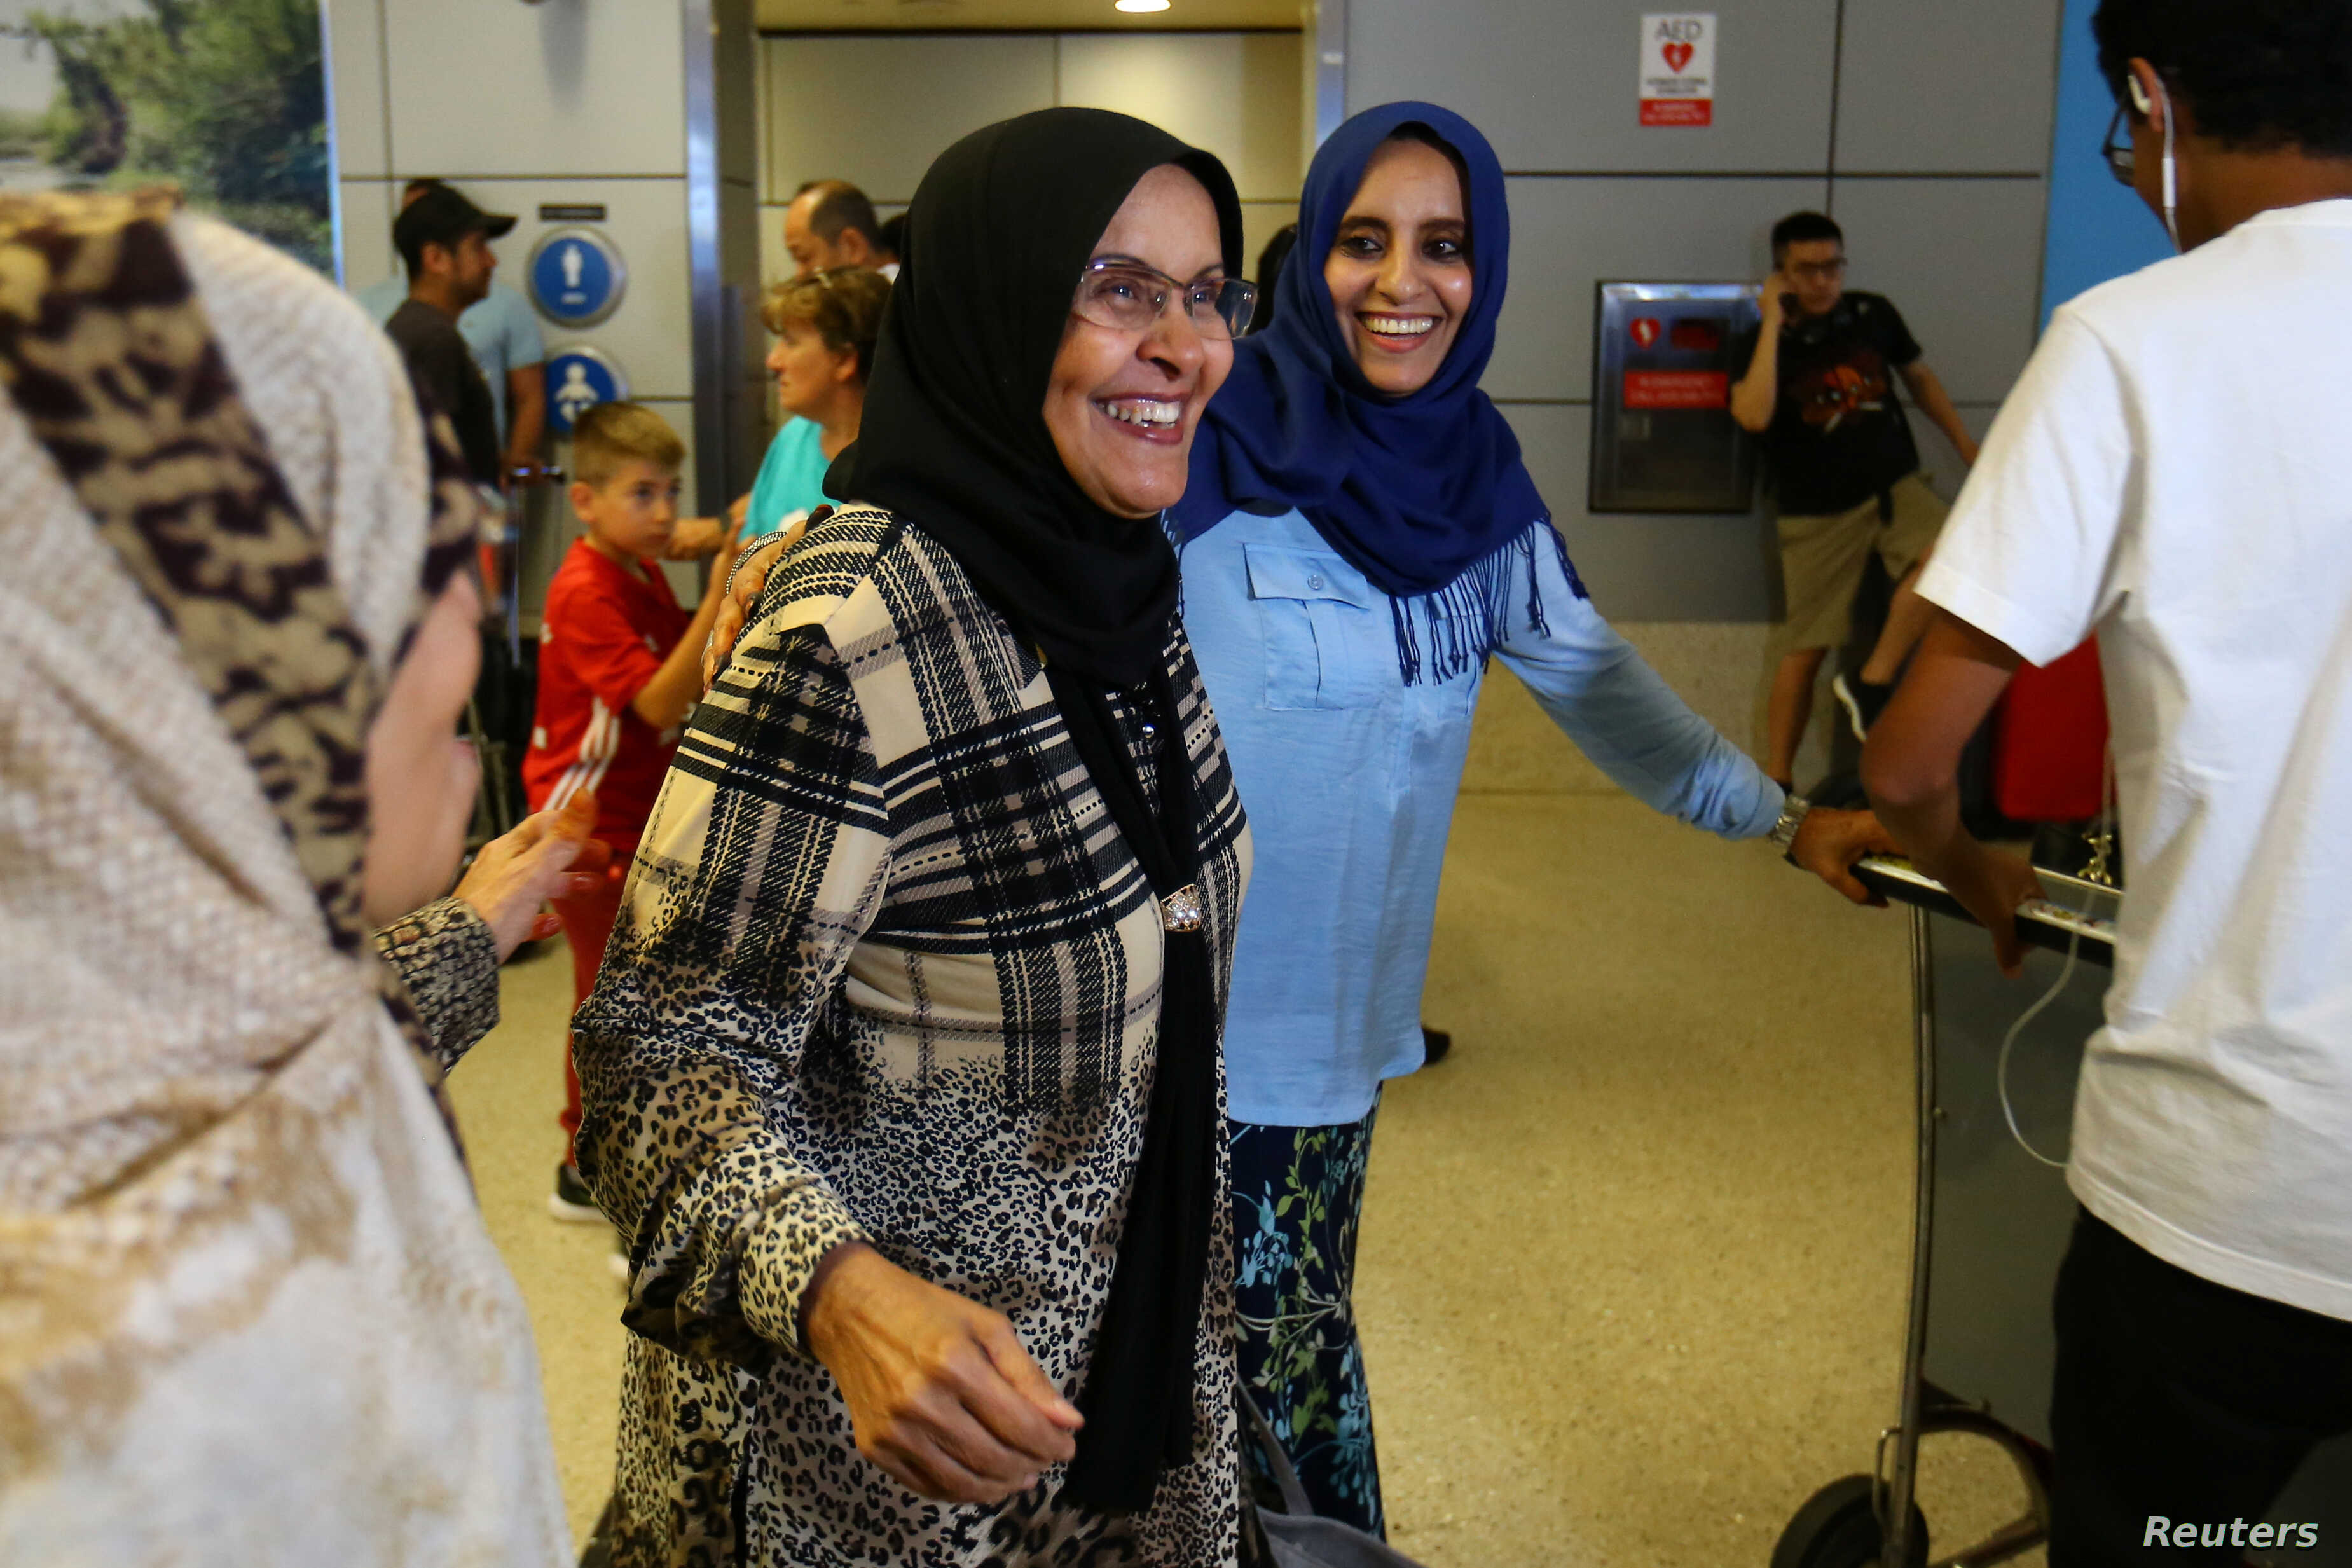 Hanadi Al-Hai, right, welcomes her mother traveling from Jordan on a Yemeni passport following the reinstatement by the U.S. Supreme Court of portions of President Donald Trump's executive order targeting travelers from six predominantly Muslim count...